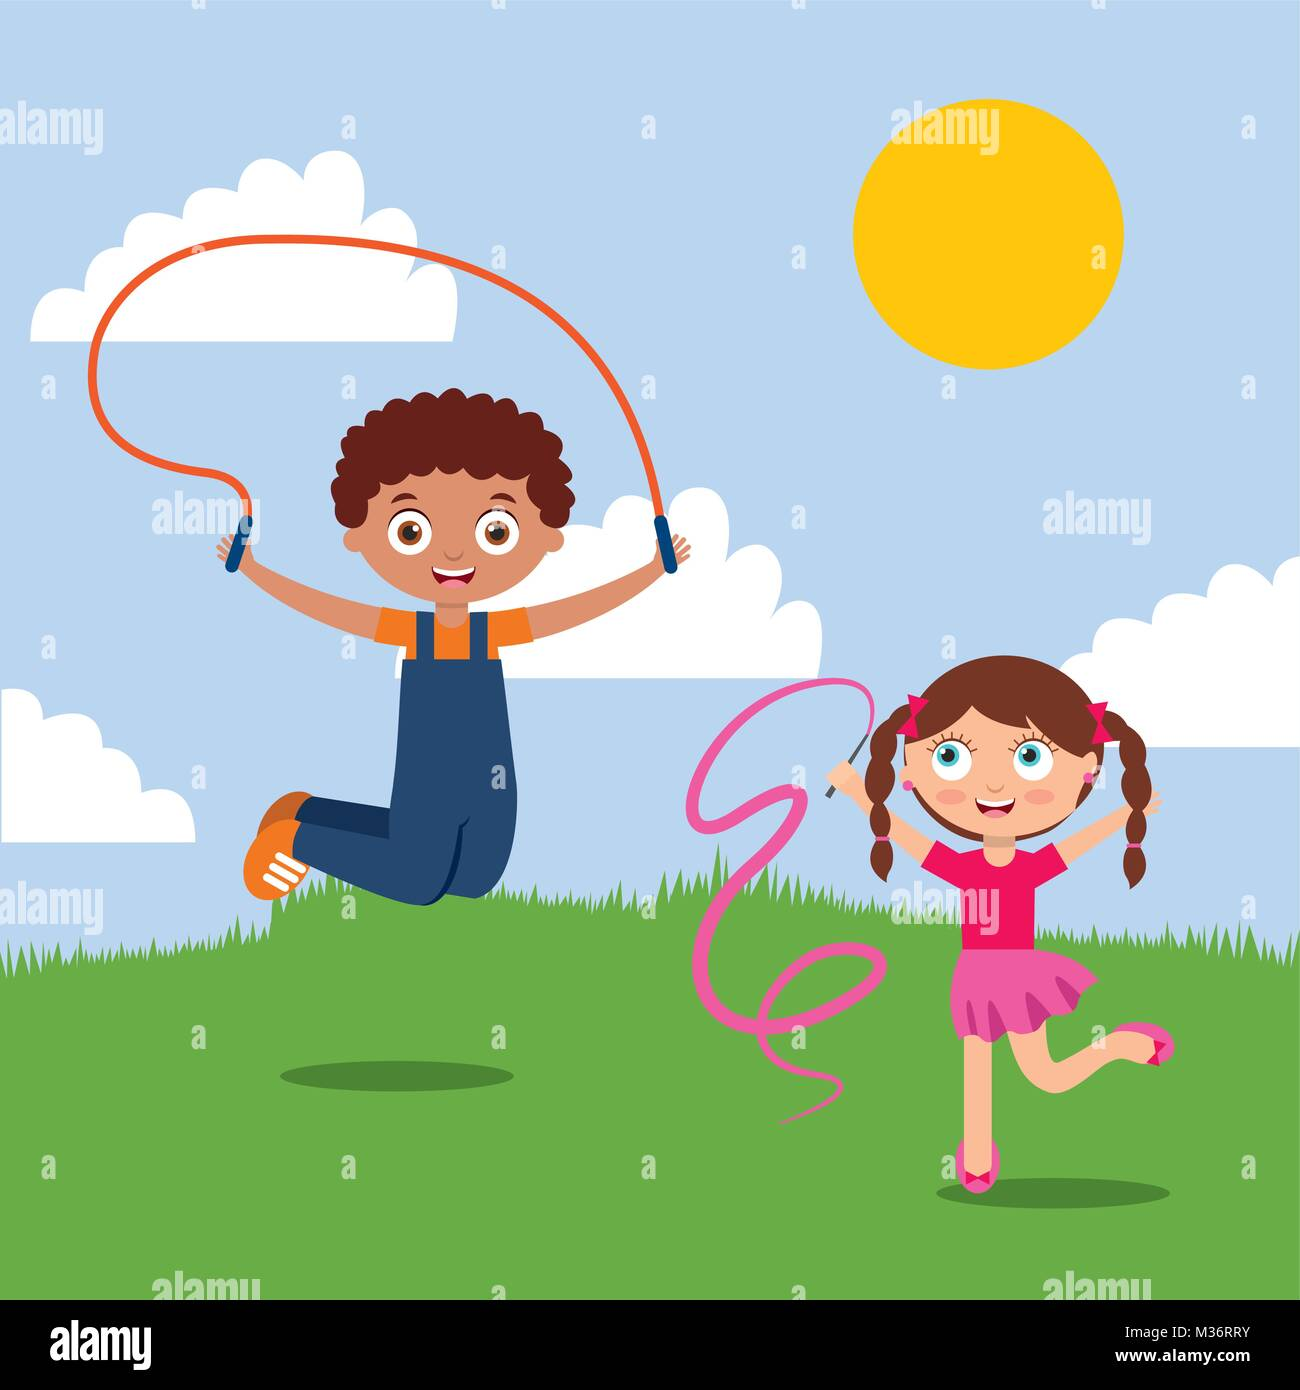 30+ Kids Playing Outside Cartoon Images PNG